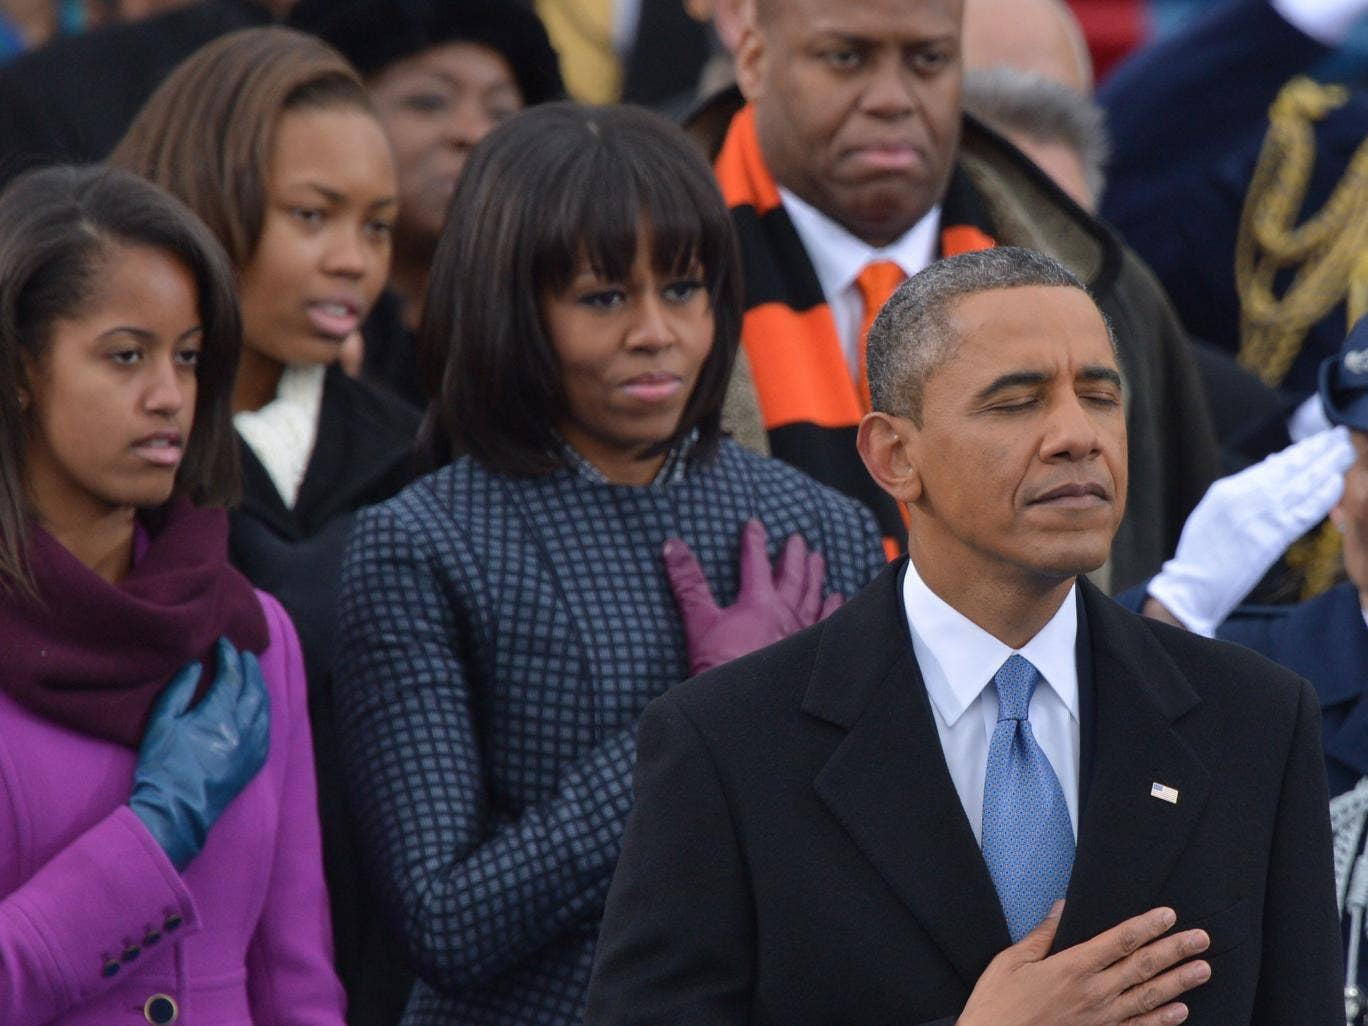 Barack Obama, First Lady Michelle Obama  (2nd left) and Malia (left) listen to Beyonce sing during the inauguration ceremonial swearing-in